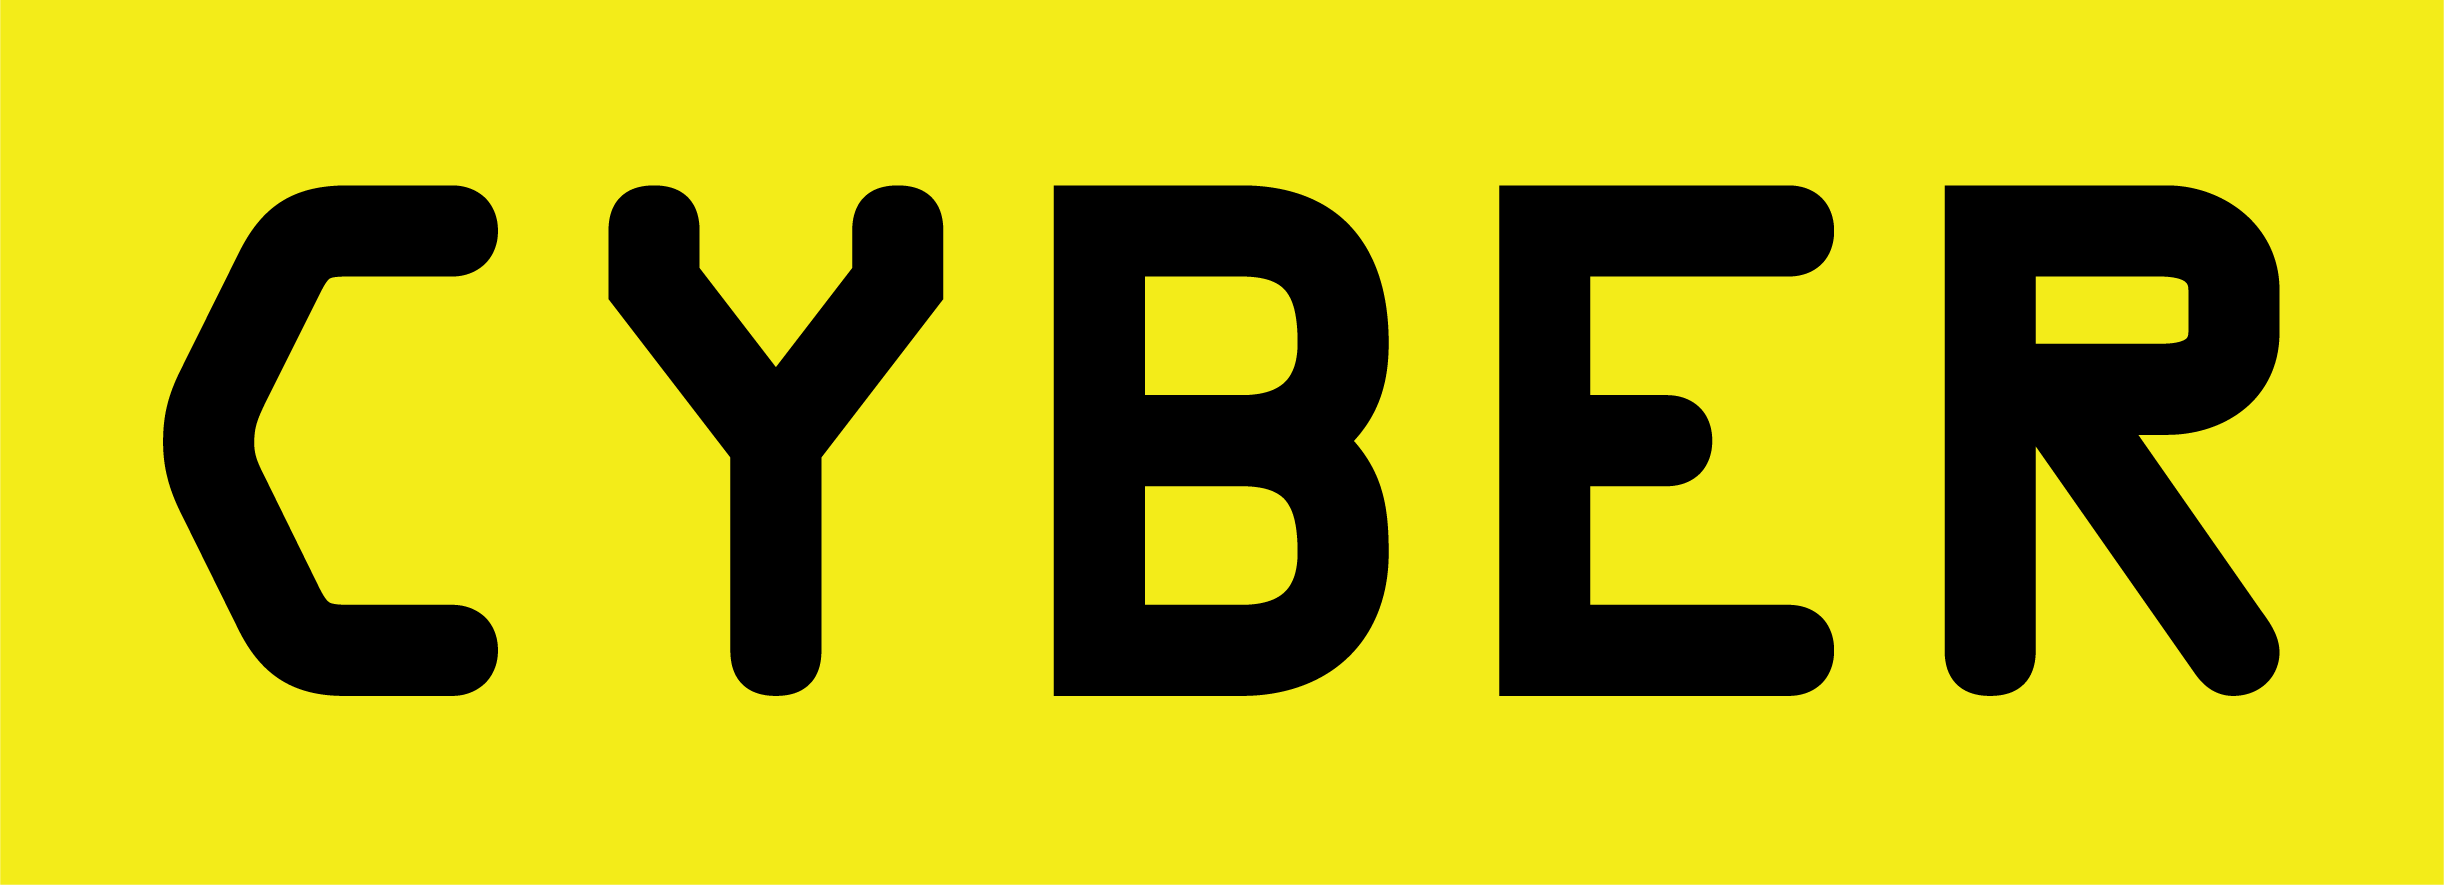 Cyber yellow 0122 61x192mm.png